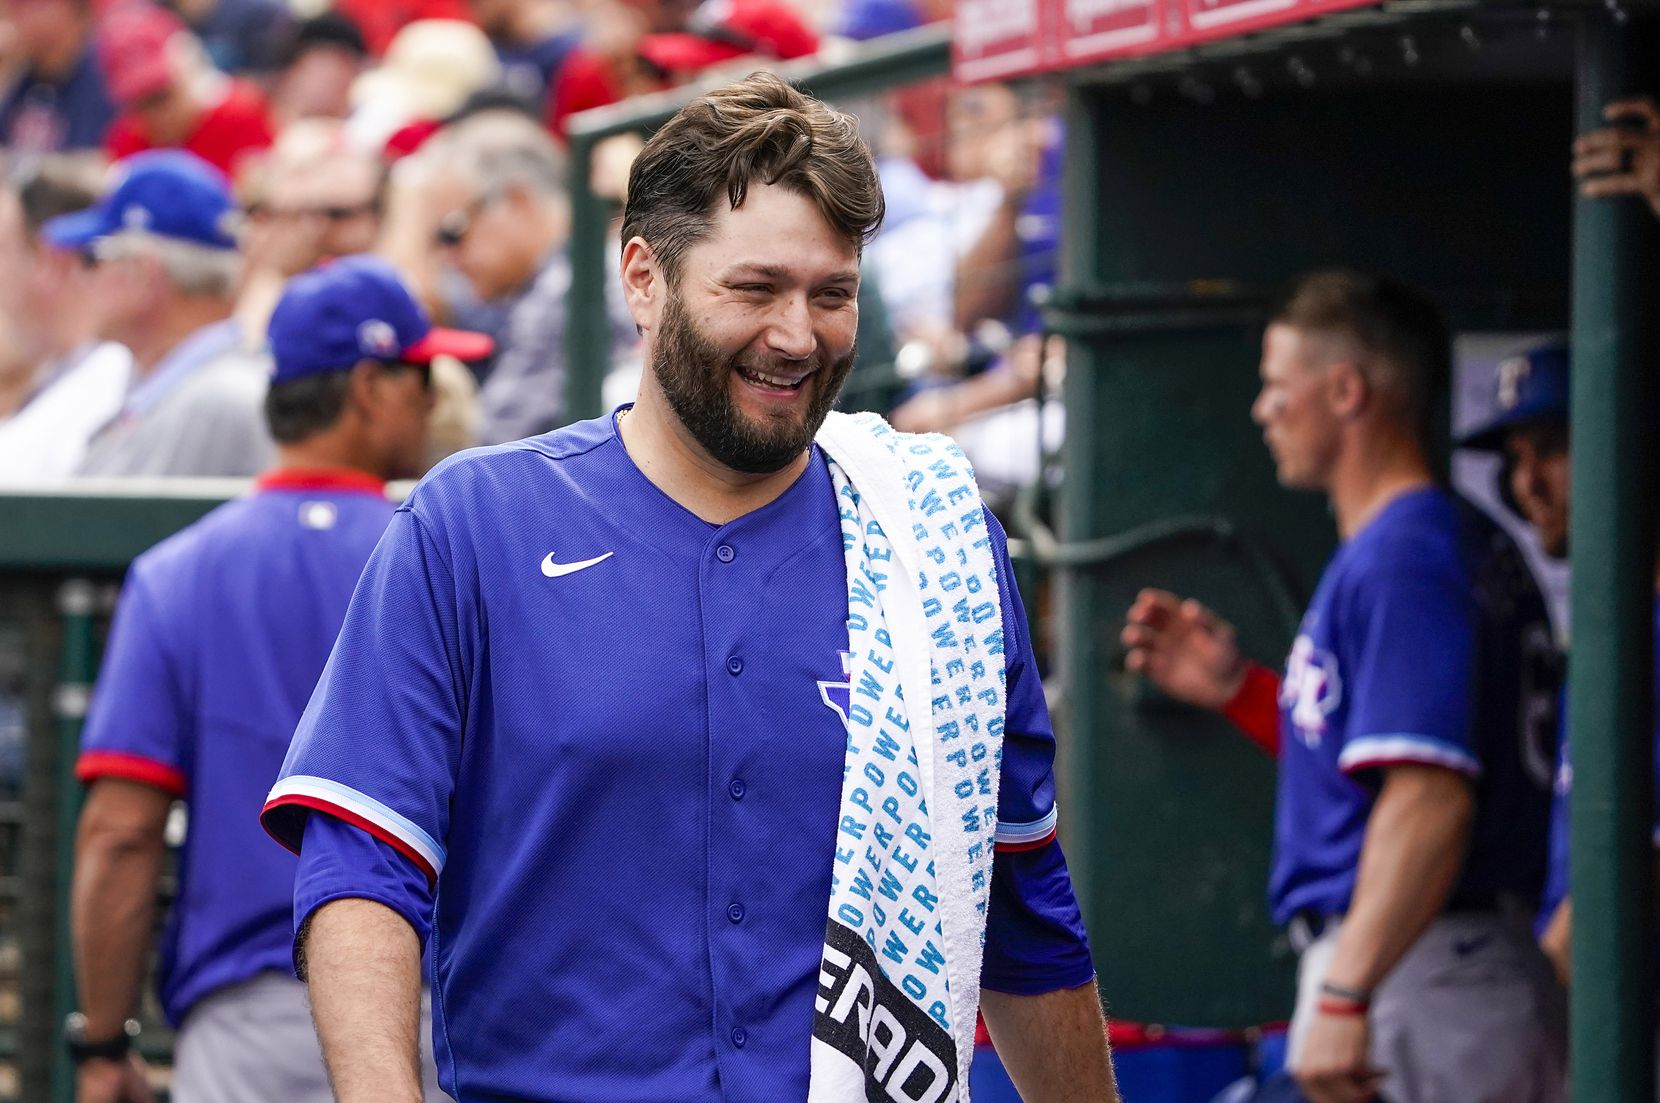 Texas Rangers pitcher Lance Lynn laughs with teammates in the dugout during the second inning of a spring training game against the Los Angeles Angels at Tempe Diablo Stadium on Friday, Feb. 28, 2020, in Tempe, Ariz.